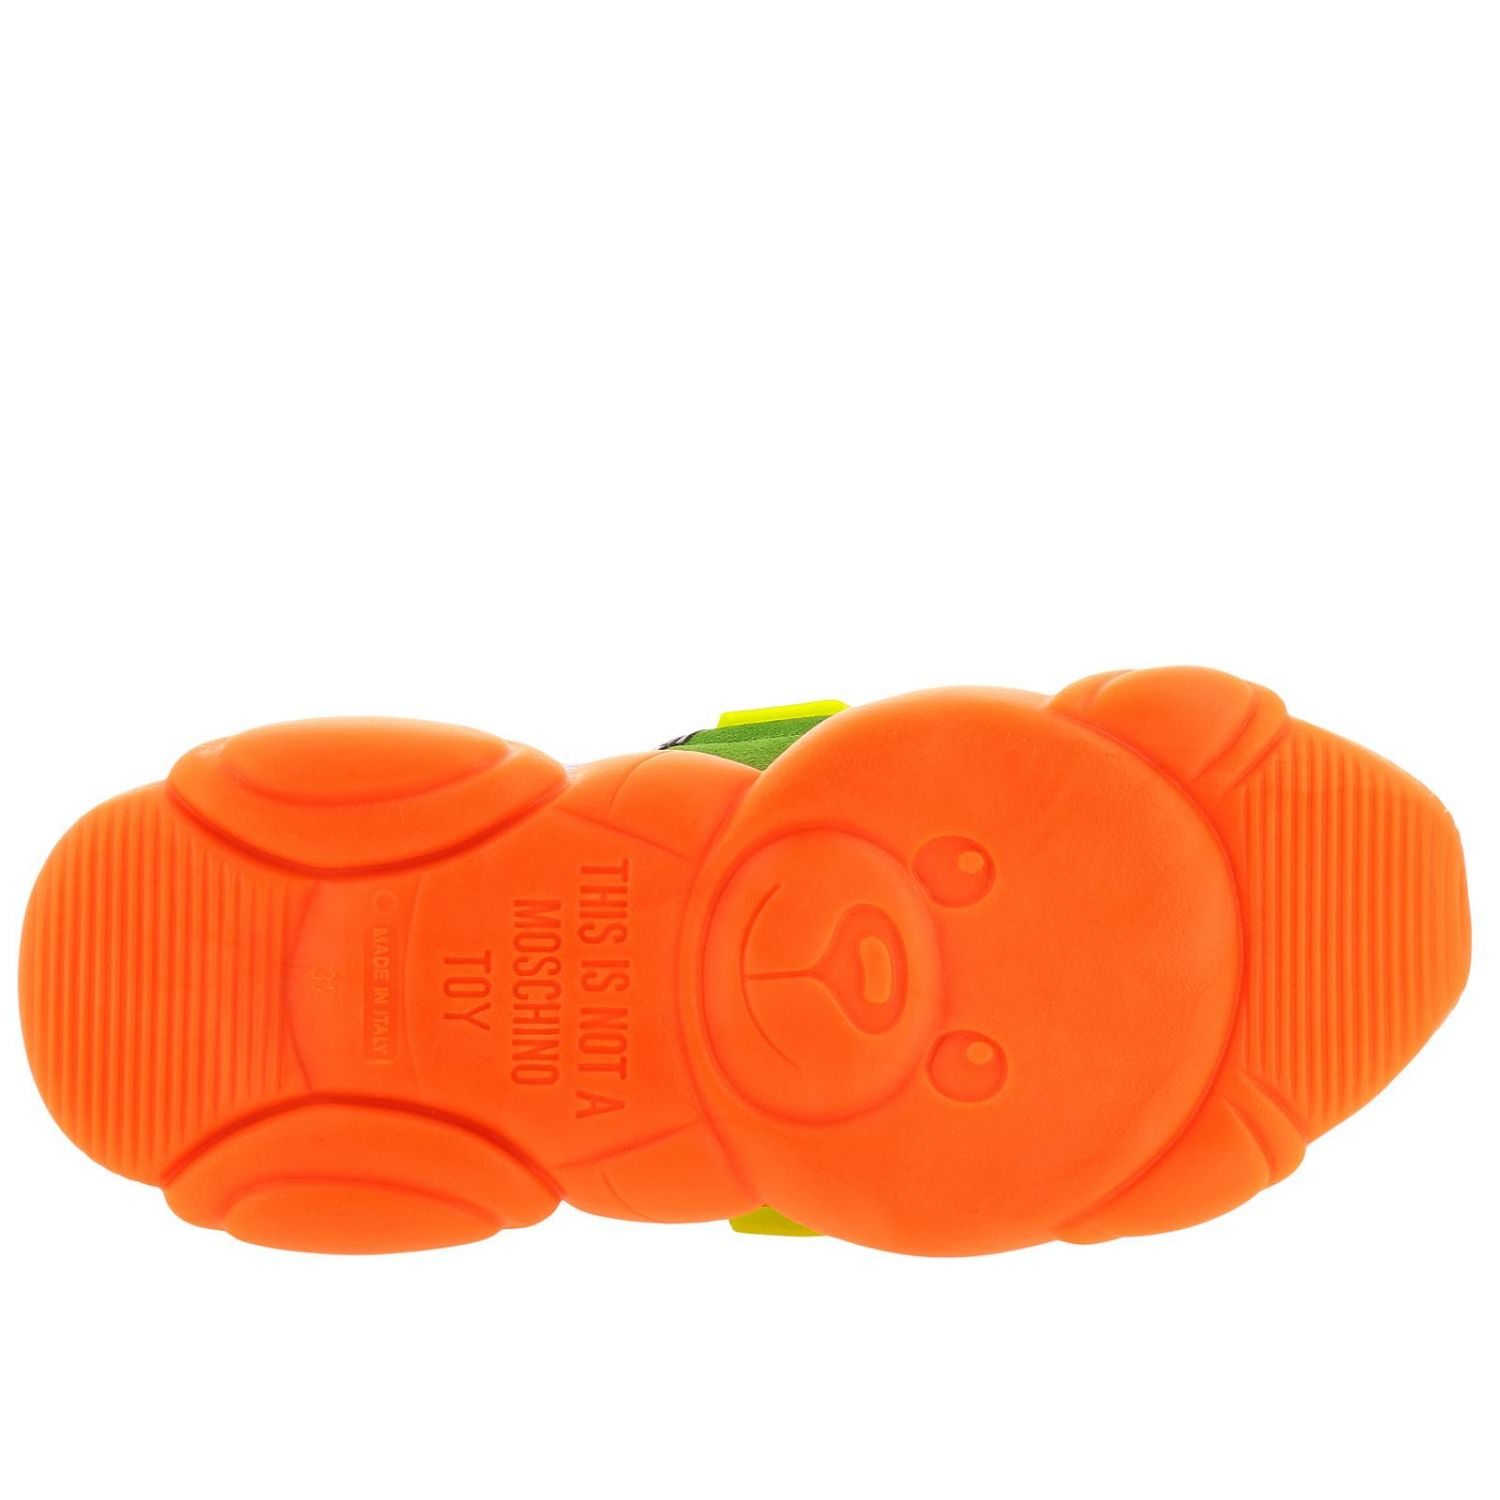 Sneakers Moschino Couture Special Edition Teddy Fluo arancione 5